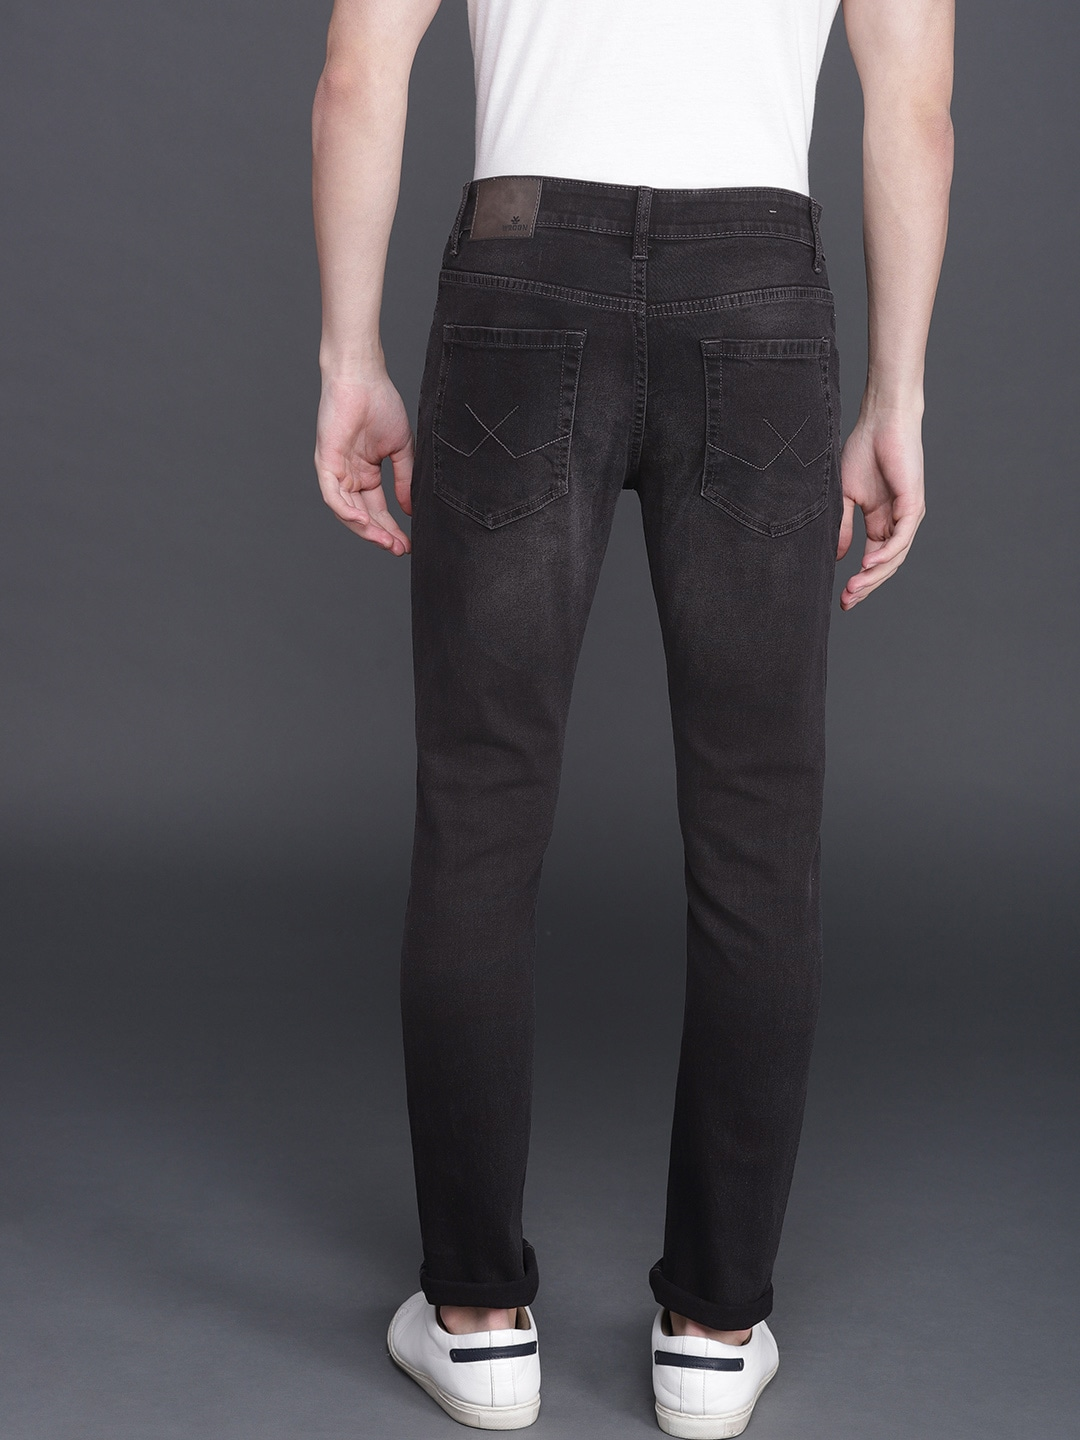 WROGN Men Black Slim Fit Mid-Rise Low Distress Stretchable Jeans